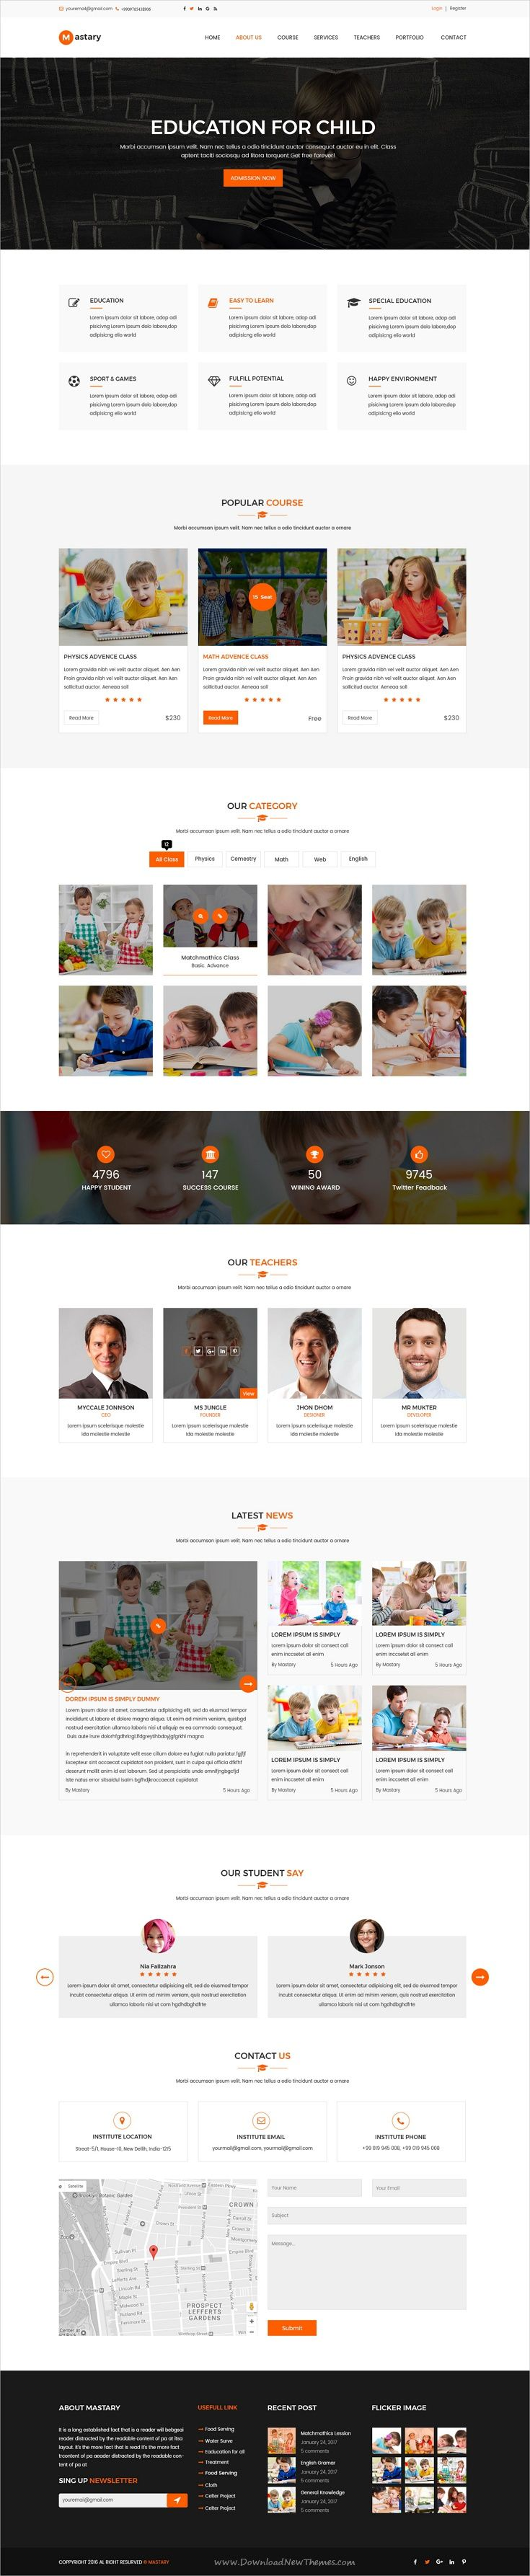 Mastary is a professional #Photoshop template for #education, #university website with 18 layered PSD files download now➩ https://themeforest.net/item/mastary-education-psd-template/19768250?ref=Datasata